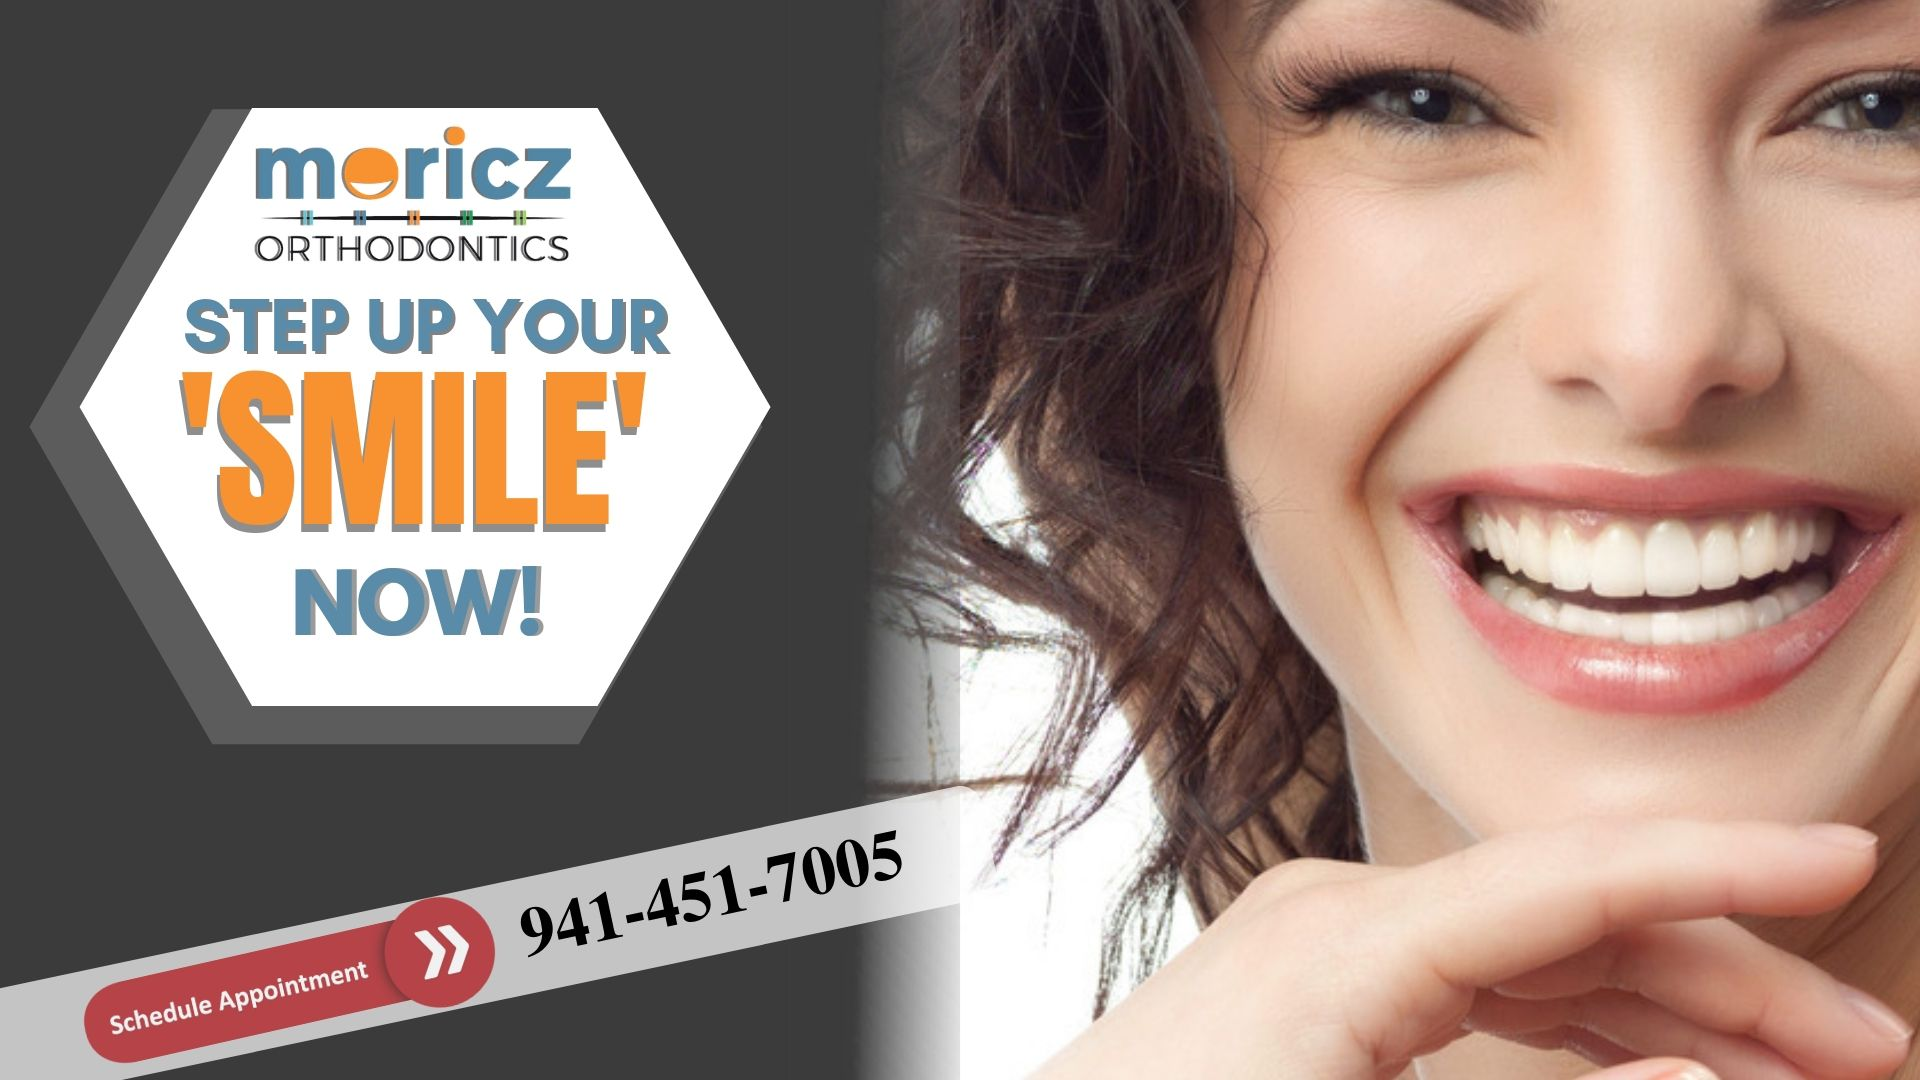 Get Your Teeth Straighten Without Braces Invisalign